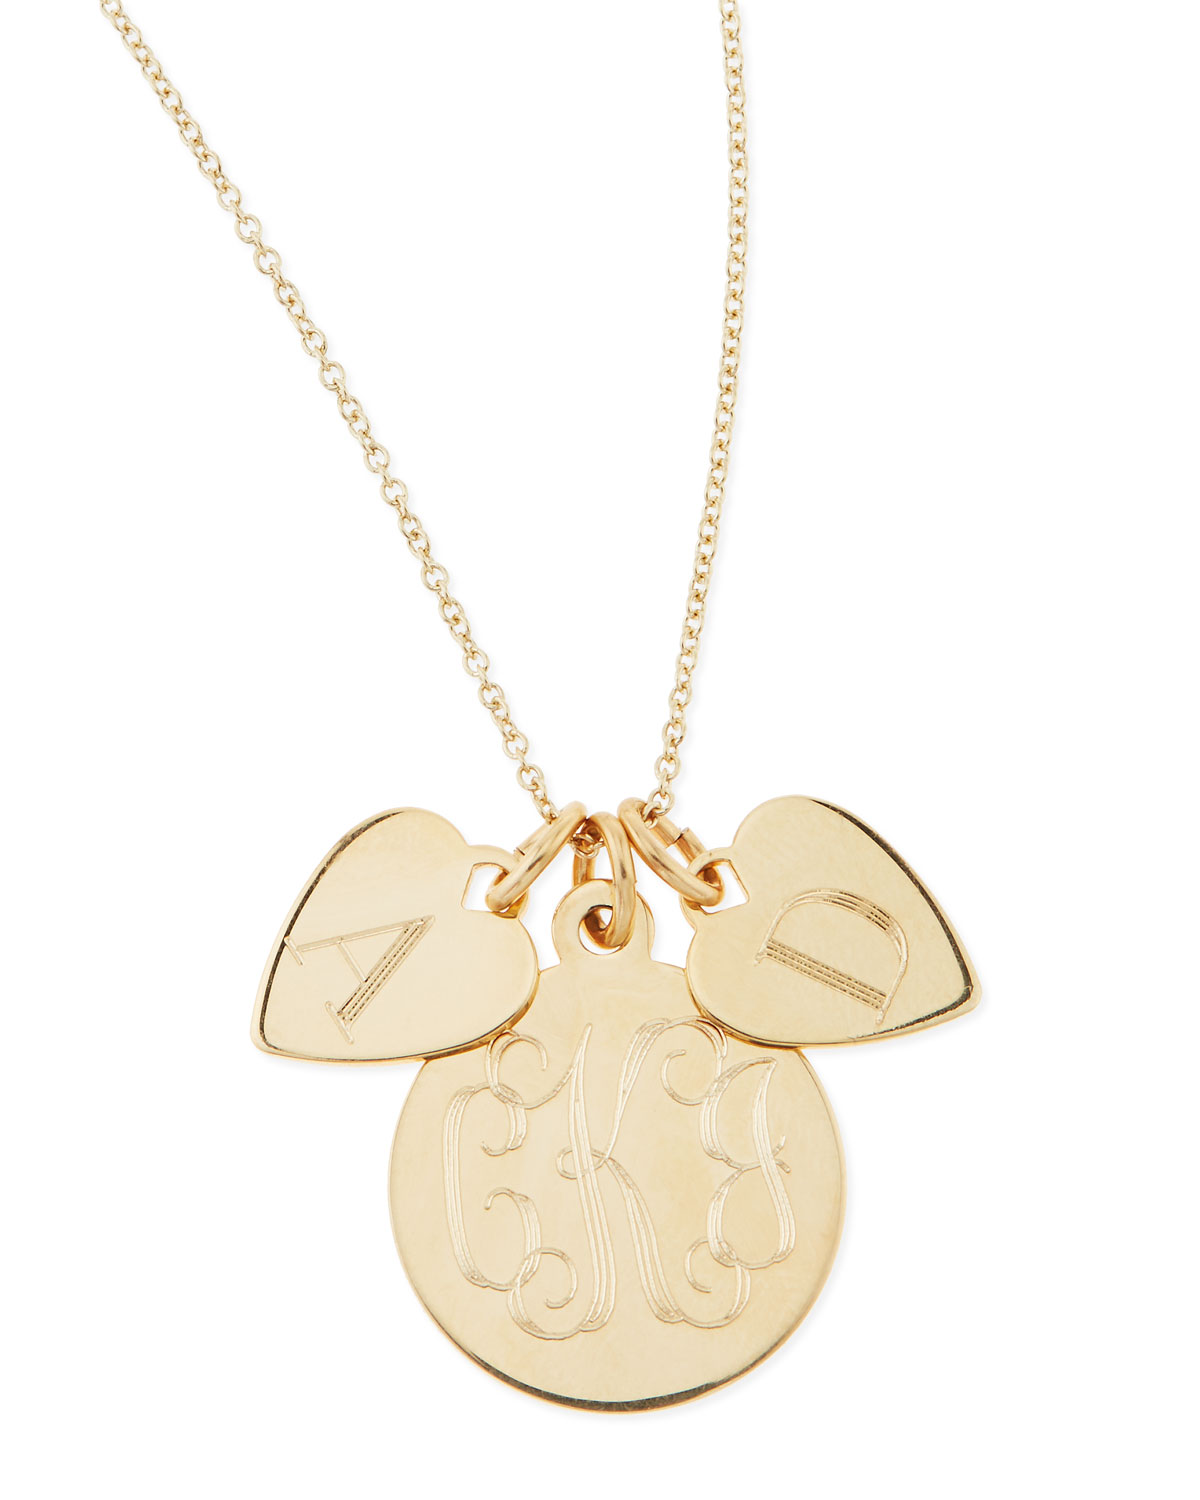 Sonya Layered Letter & Monogram Necklace, Gold - Sarah Chloe